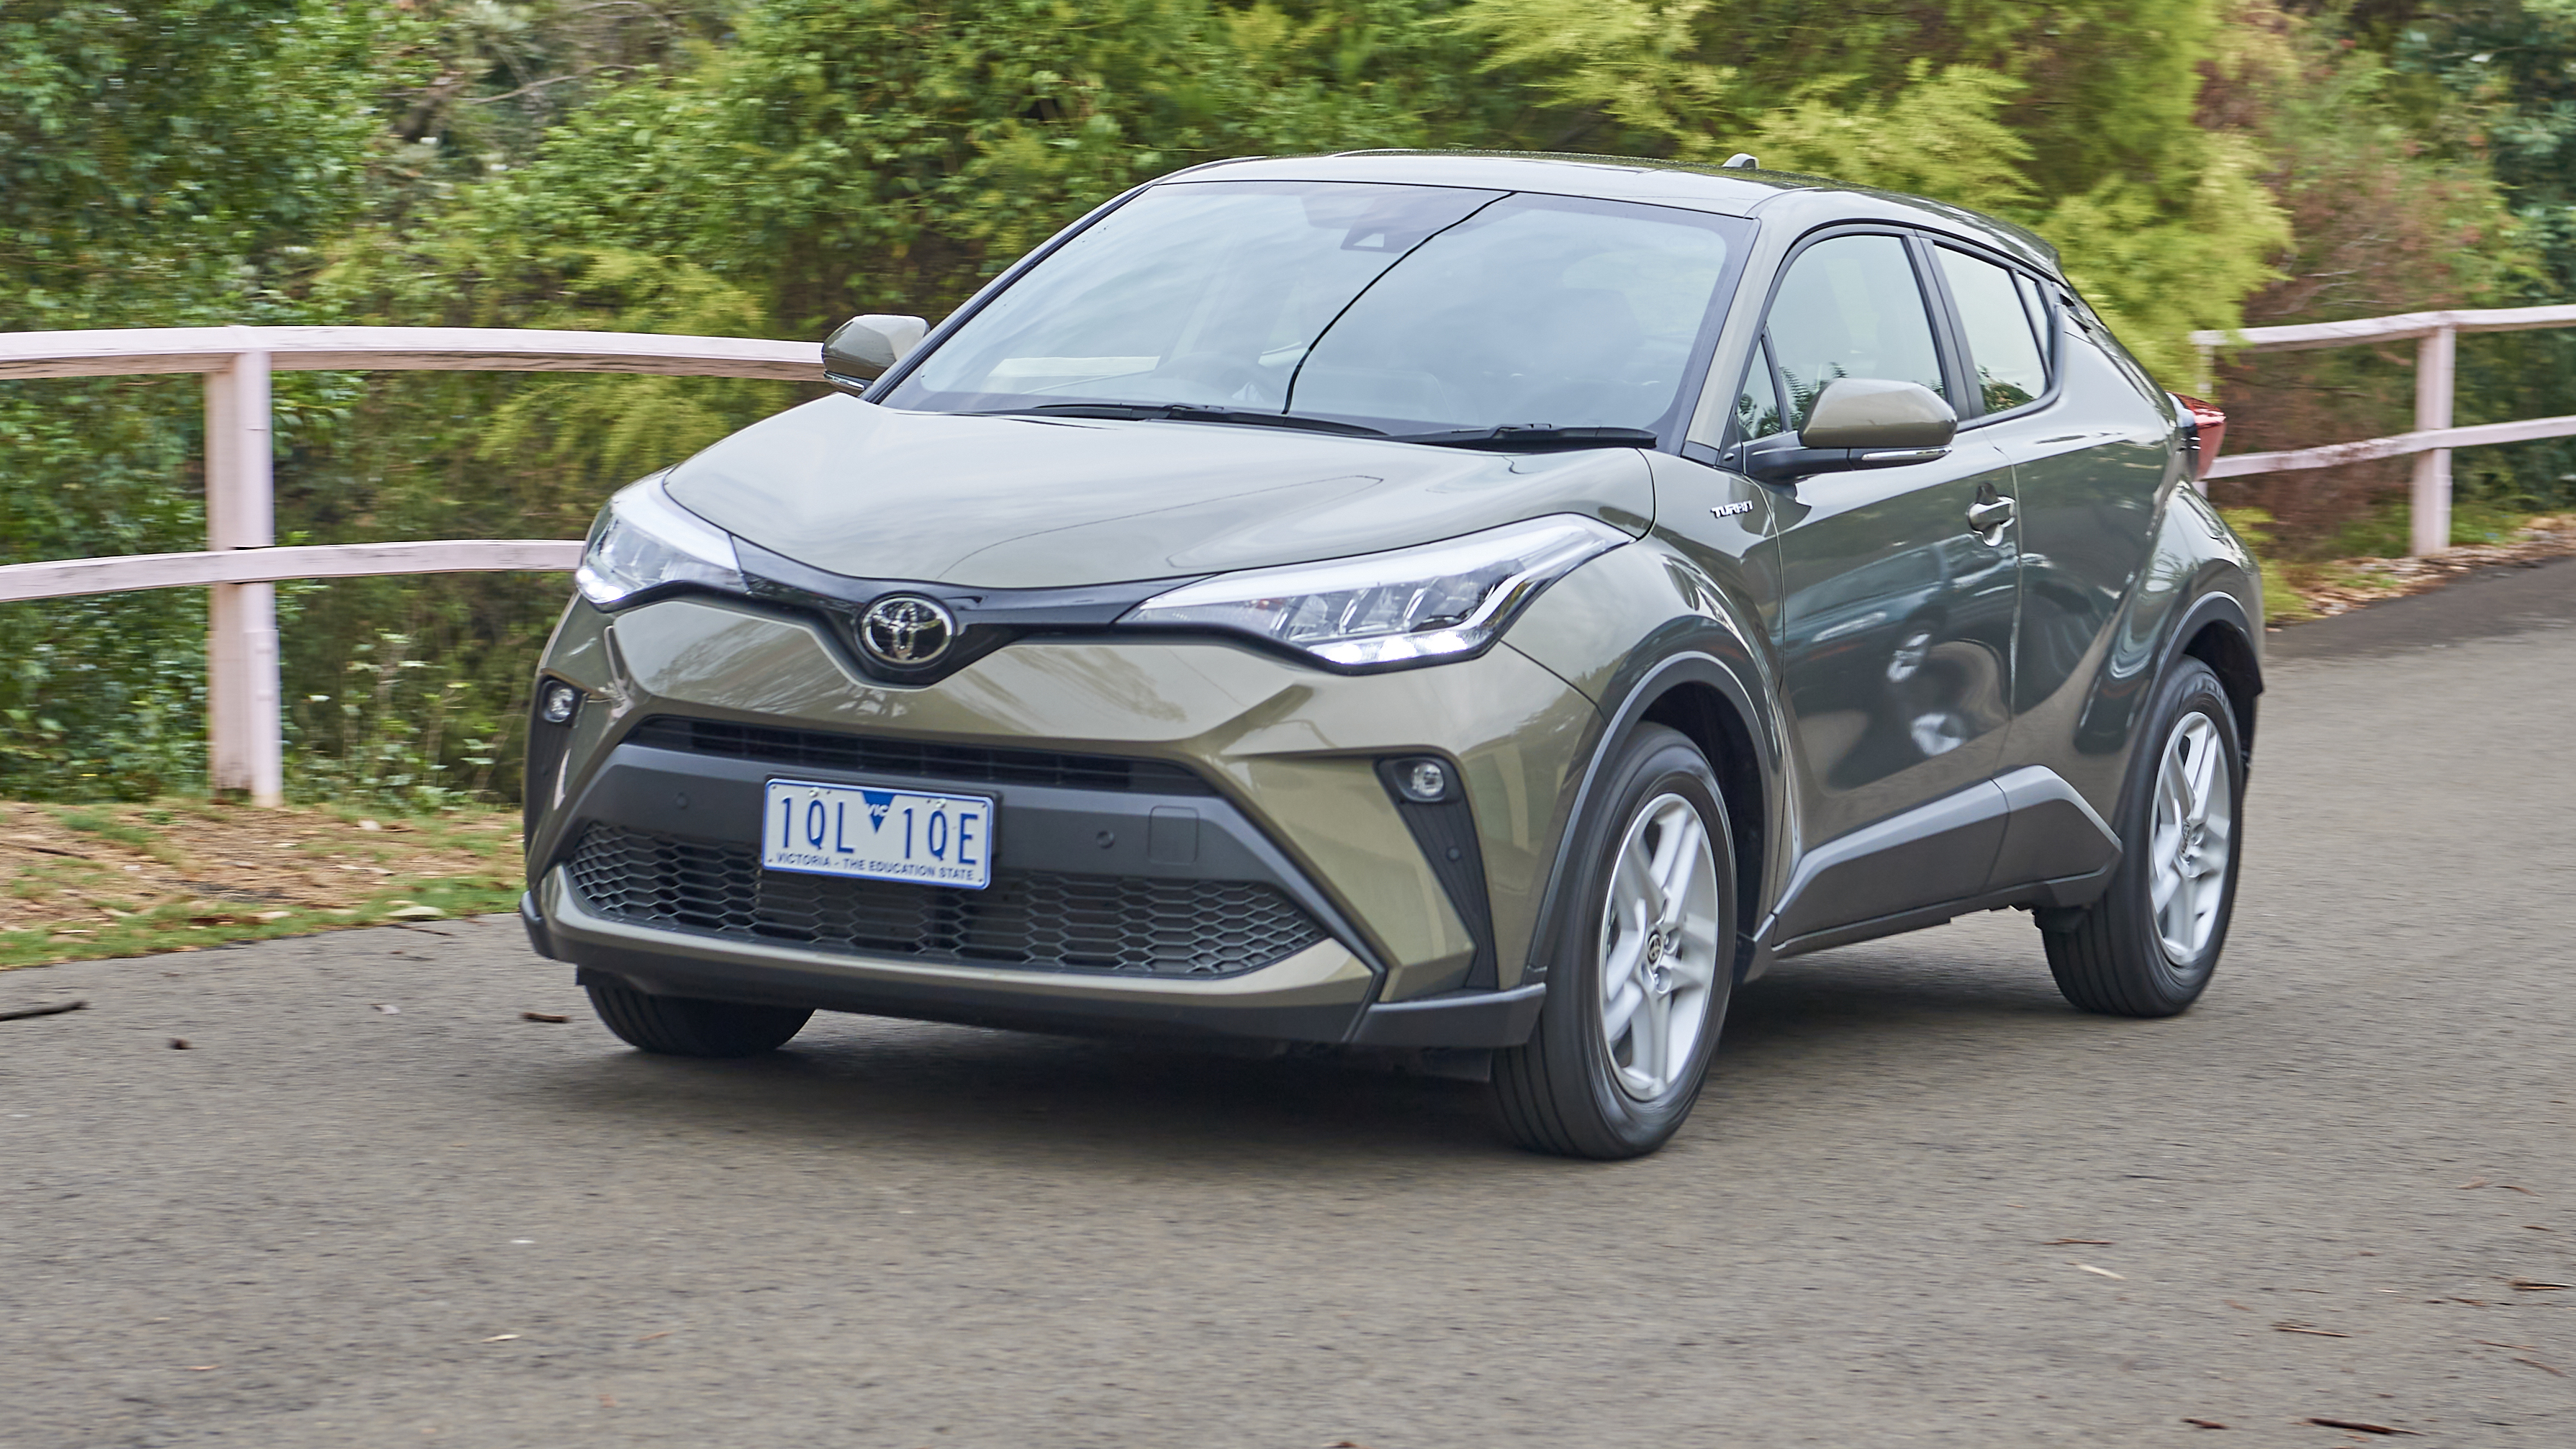 2020 Toyota C-HR 2WD review